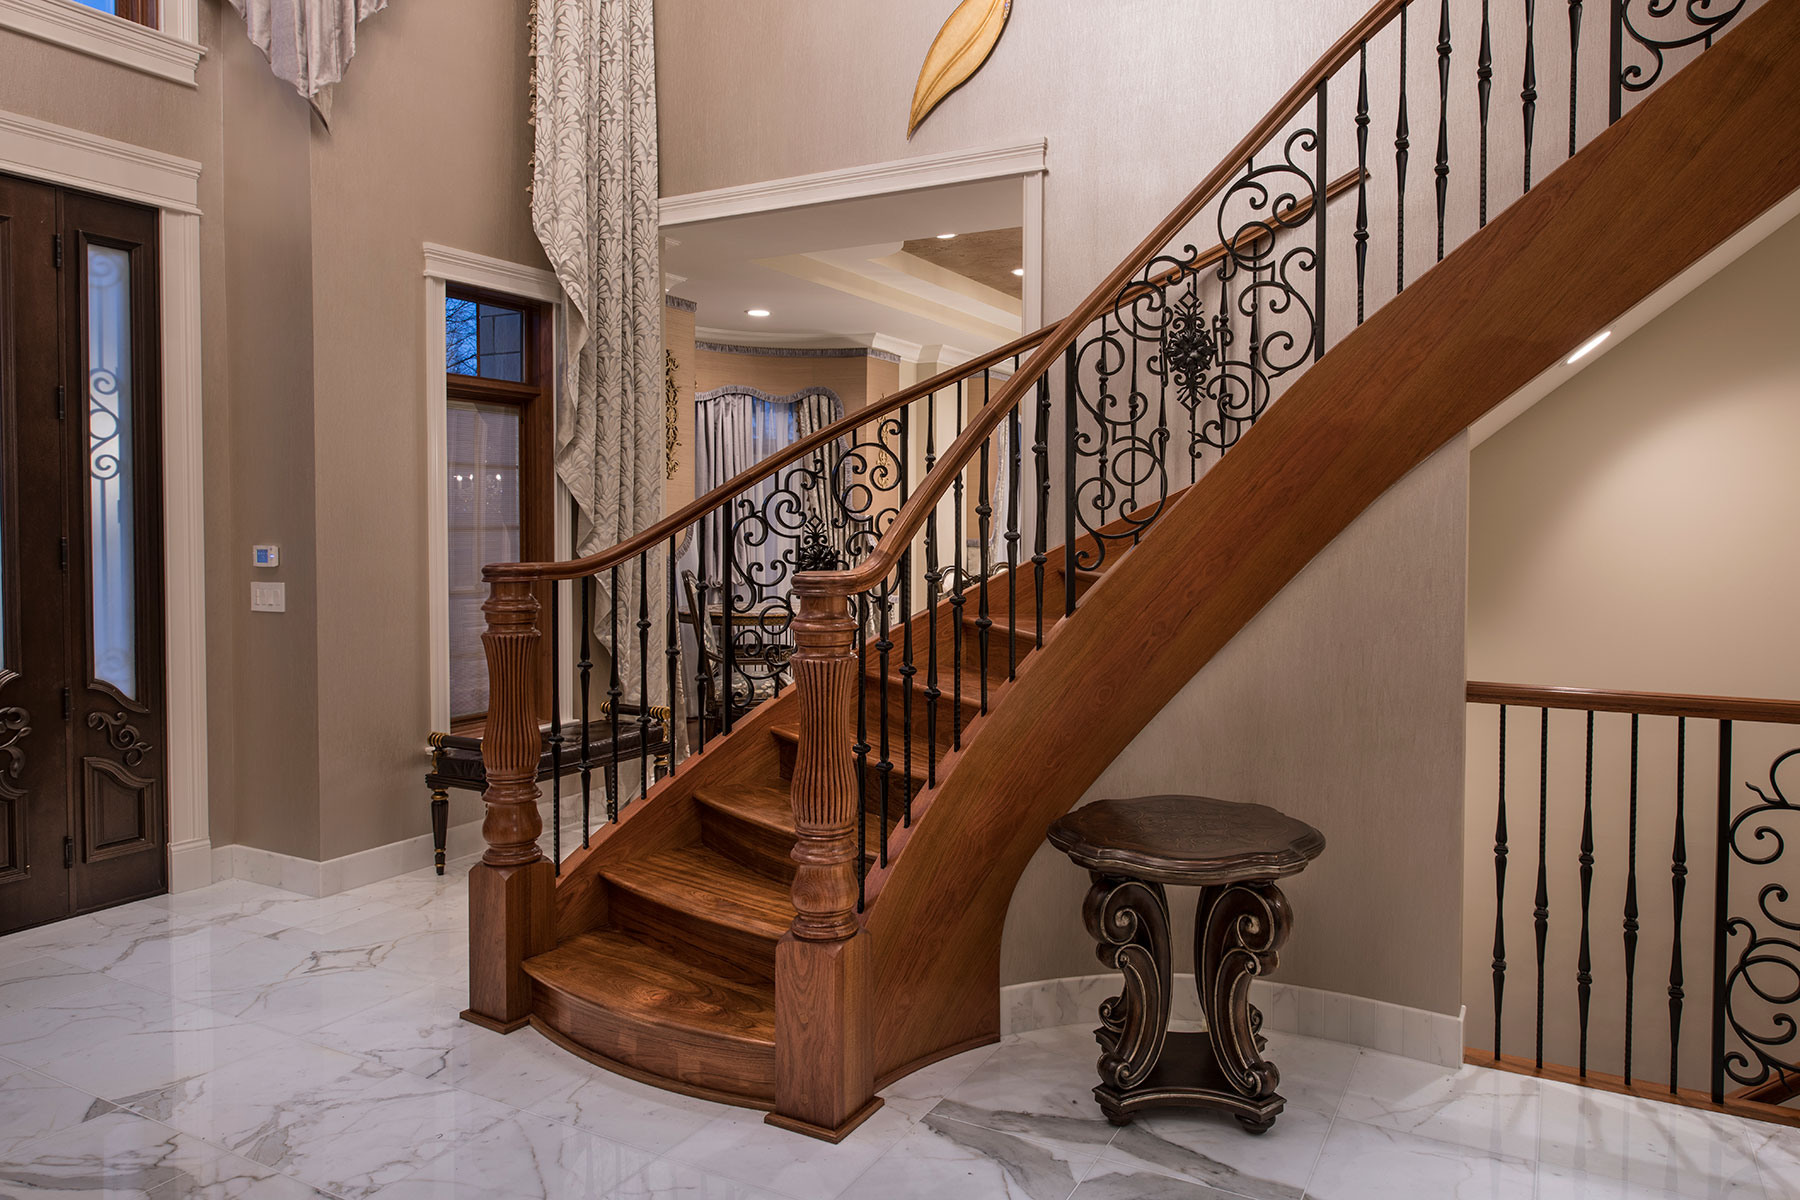 Foyer, Stairs, Elevator - Mango Ave., Morton Grove, IL Custom Home. America's Custom Home Builders: New Construction, Remodeling, Restoration Services. Residential and Commercial.